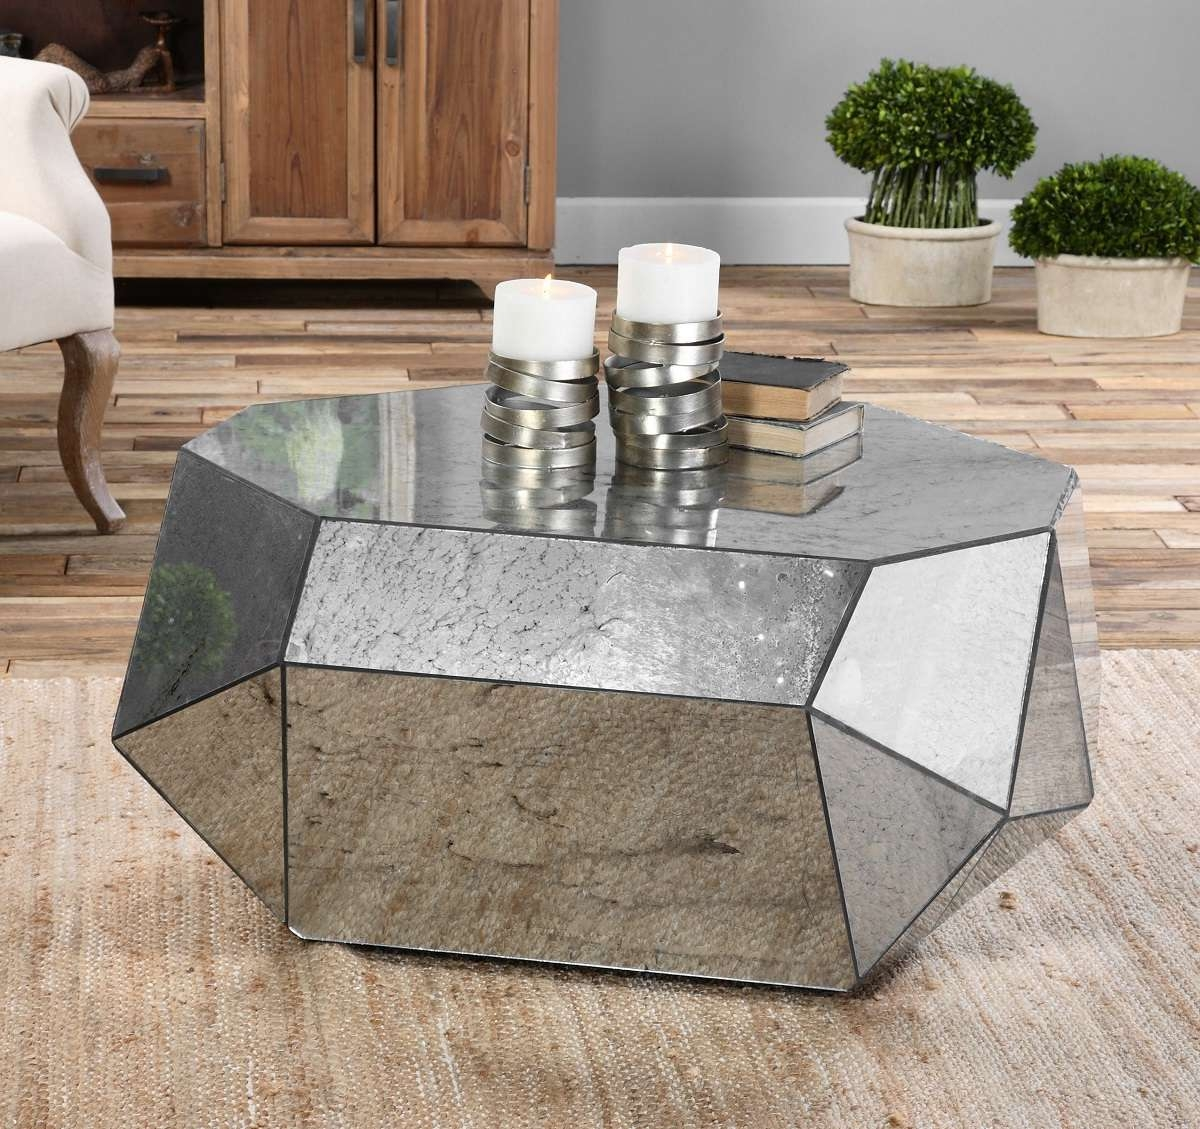 Well Known Small Mirrored Coffee Tables Intended For The Mirrored Coffee Table For Cafe And Apartment (View 20 of 20)